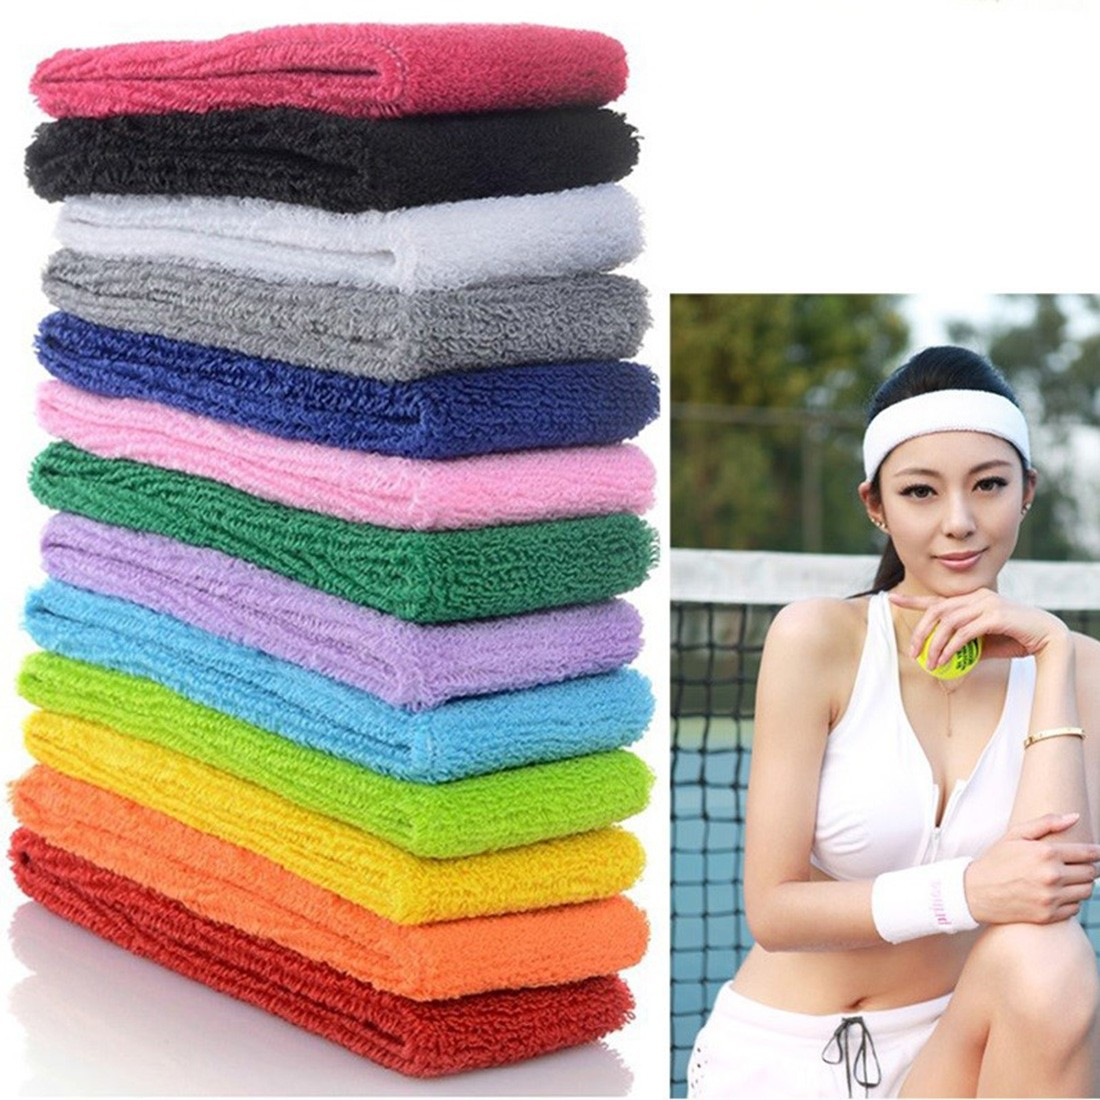 Hot Sale Sports Yoga Gym Stretch Headband Head Band Hair Band Sweat Sweatband Mens Women turbante pelo mujer yoga gym sport stretch headband womens anti sweat hairband cotton men women sweatband running outdoor fitness